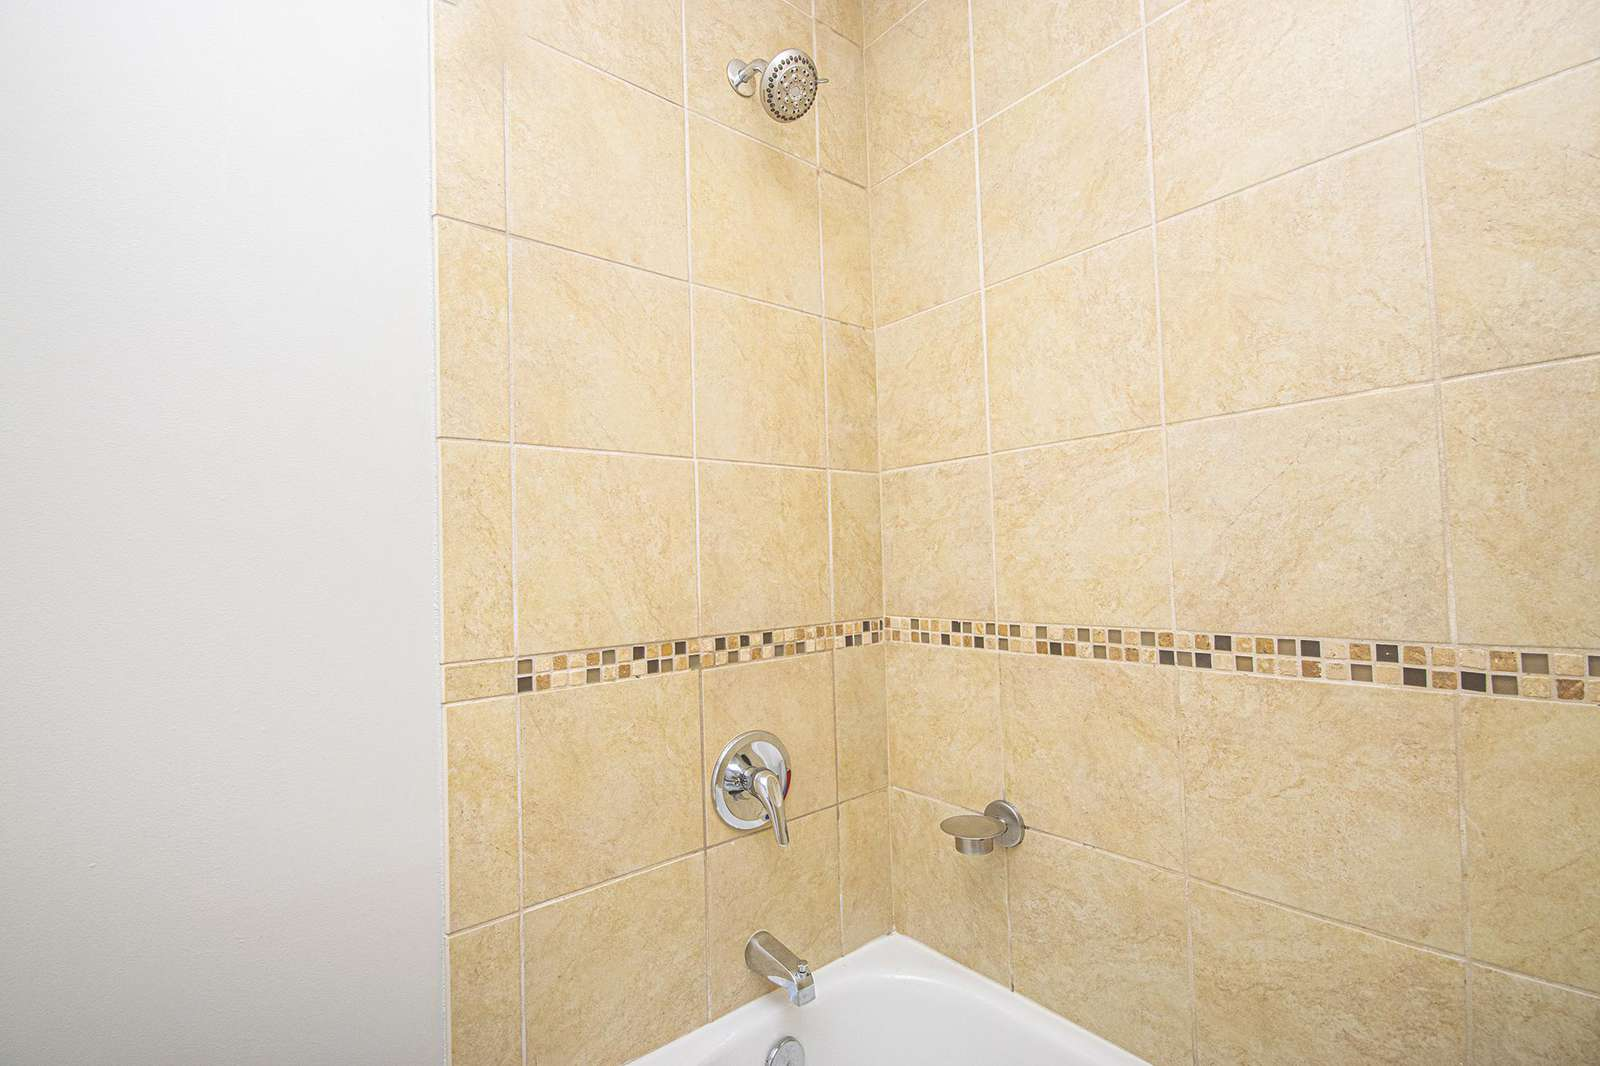 Shower/tub combination for bathing young children!